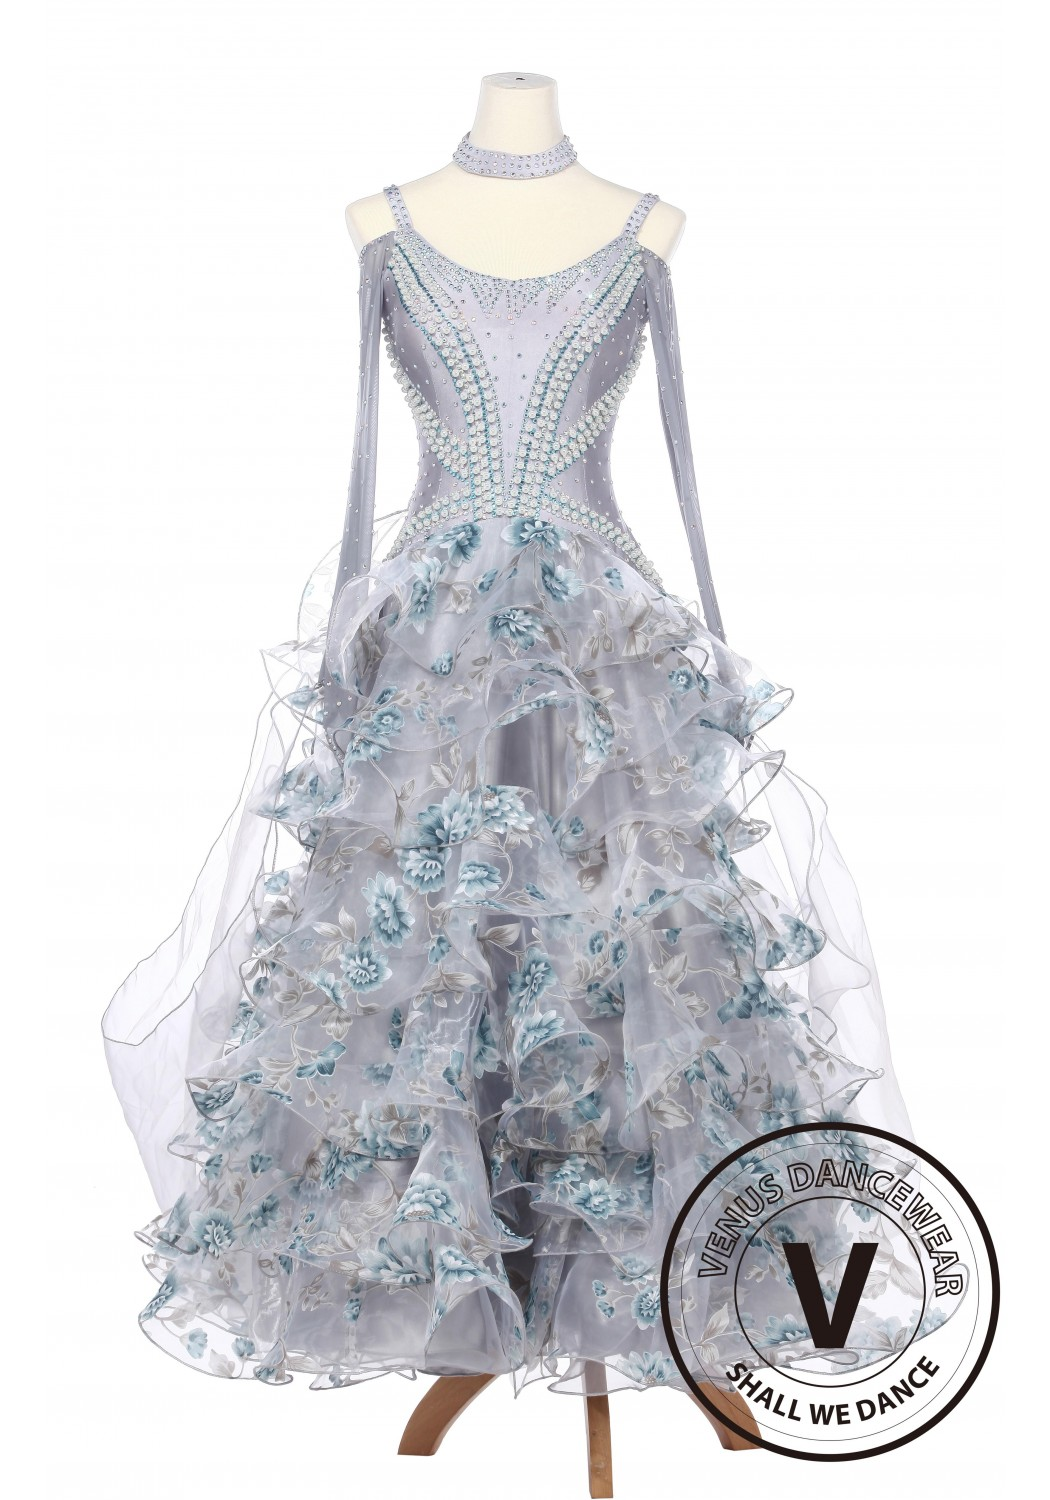 Silver Daffodils Waltz Foxtrot Standard Smooth Competition Ballroom Gown with Pearl